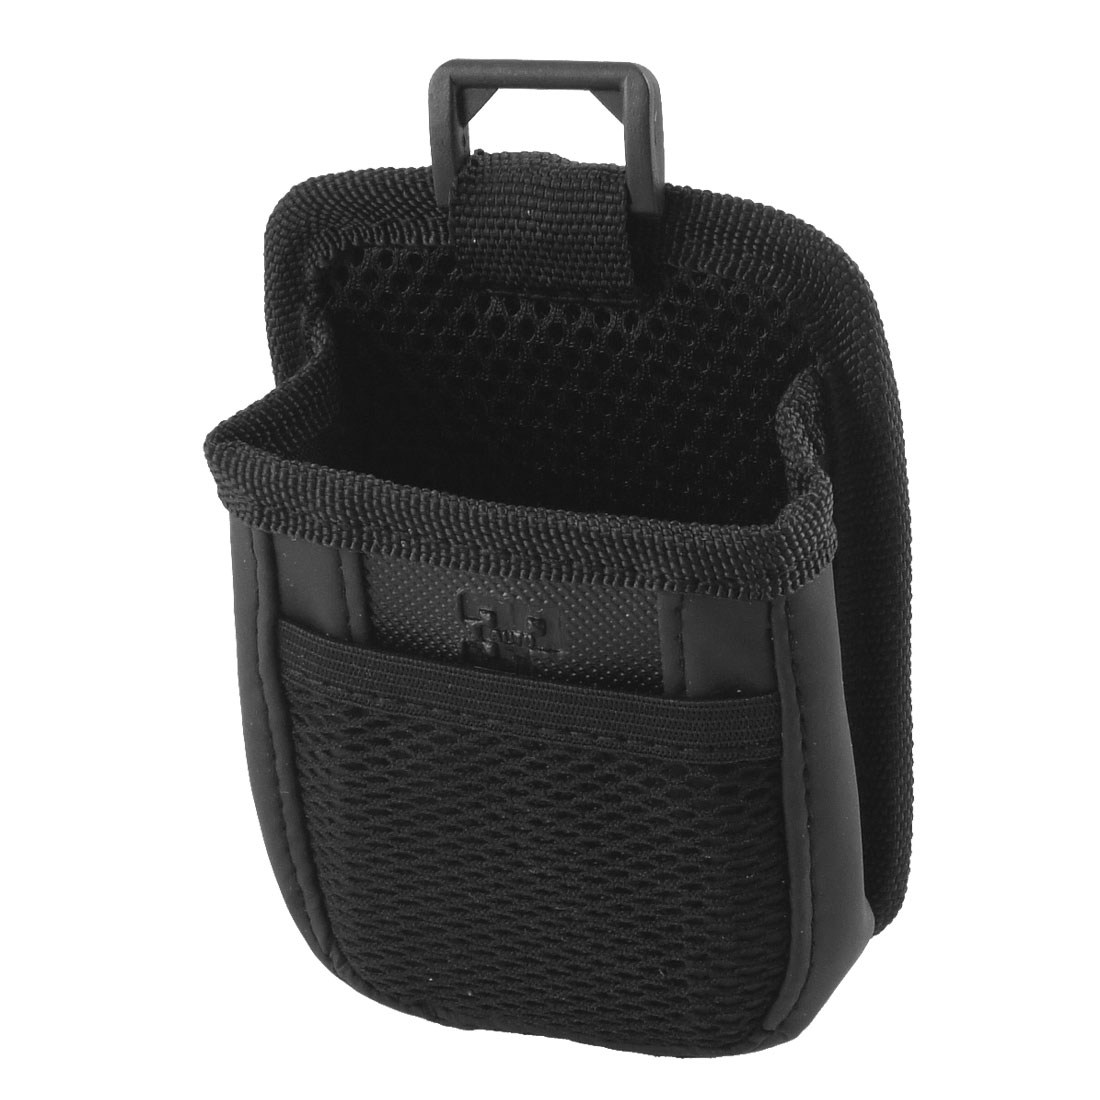 Phone Storage Pouch Holder Black for Auto Car Air Vent